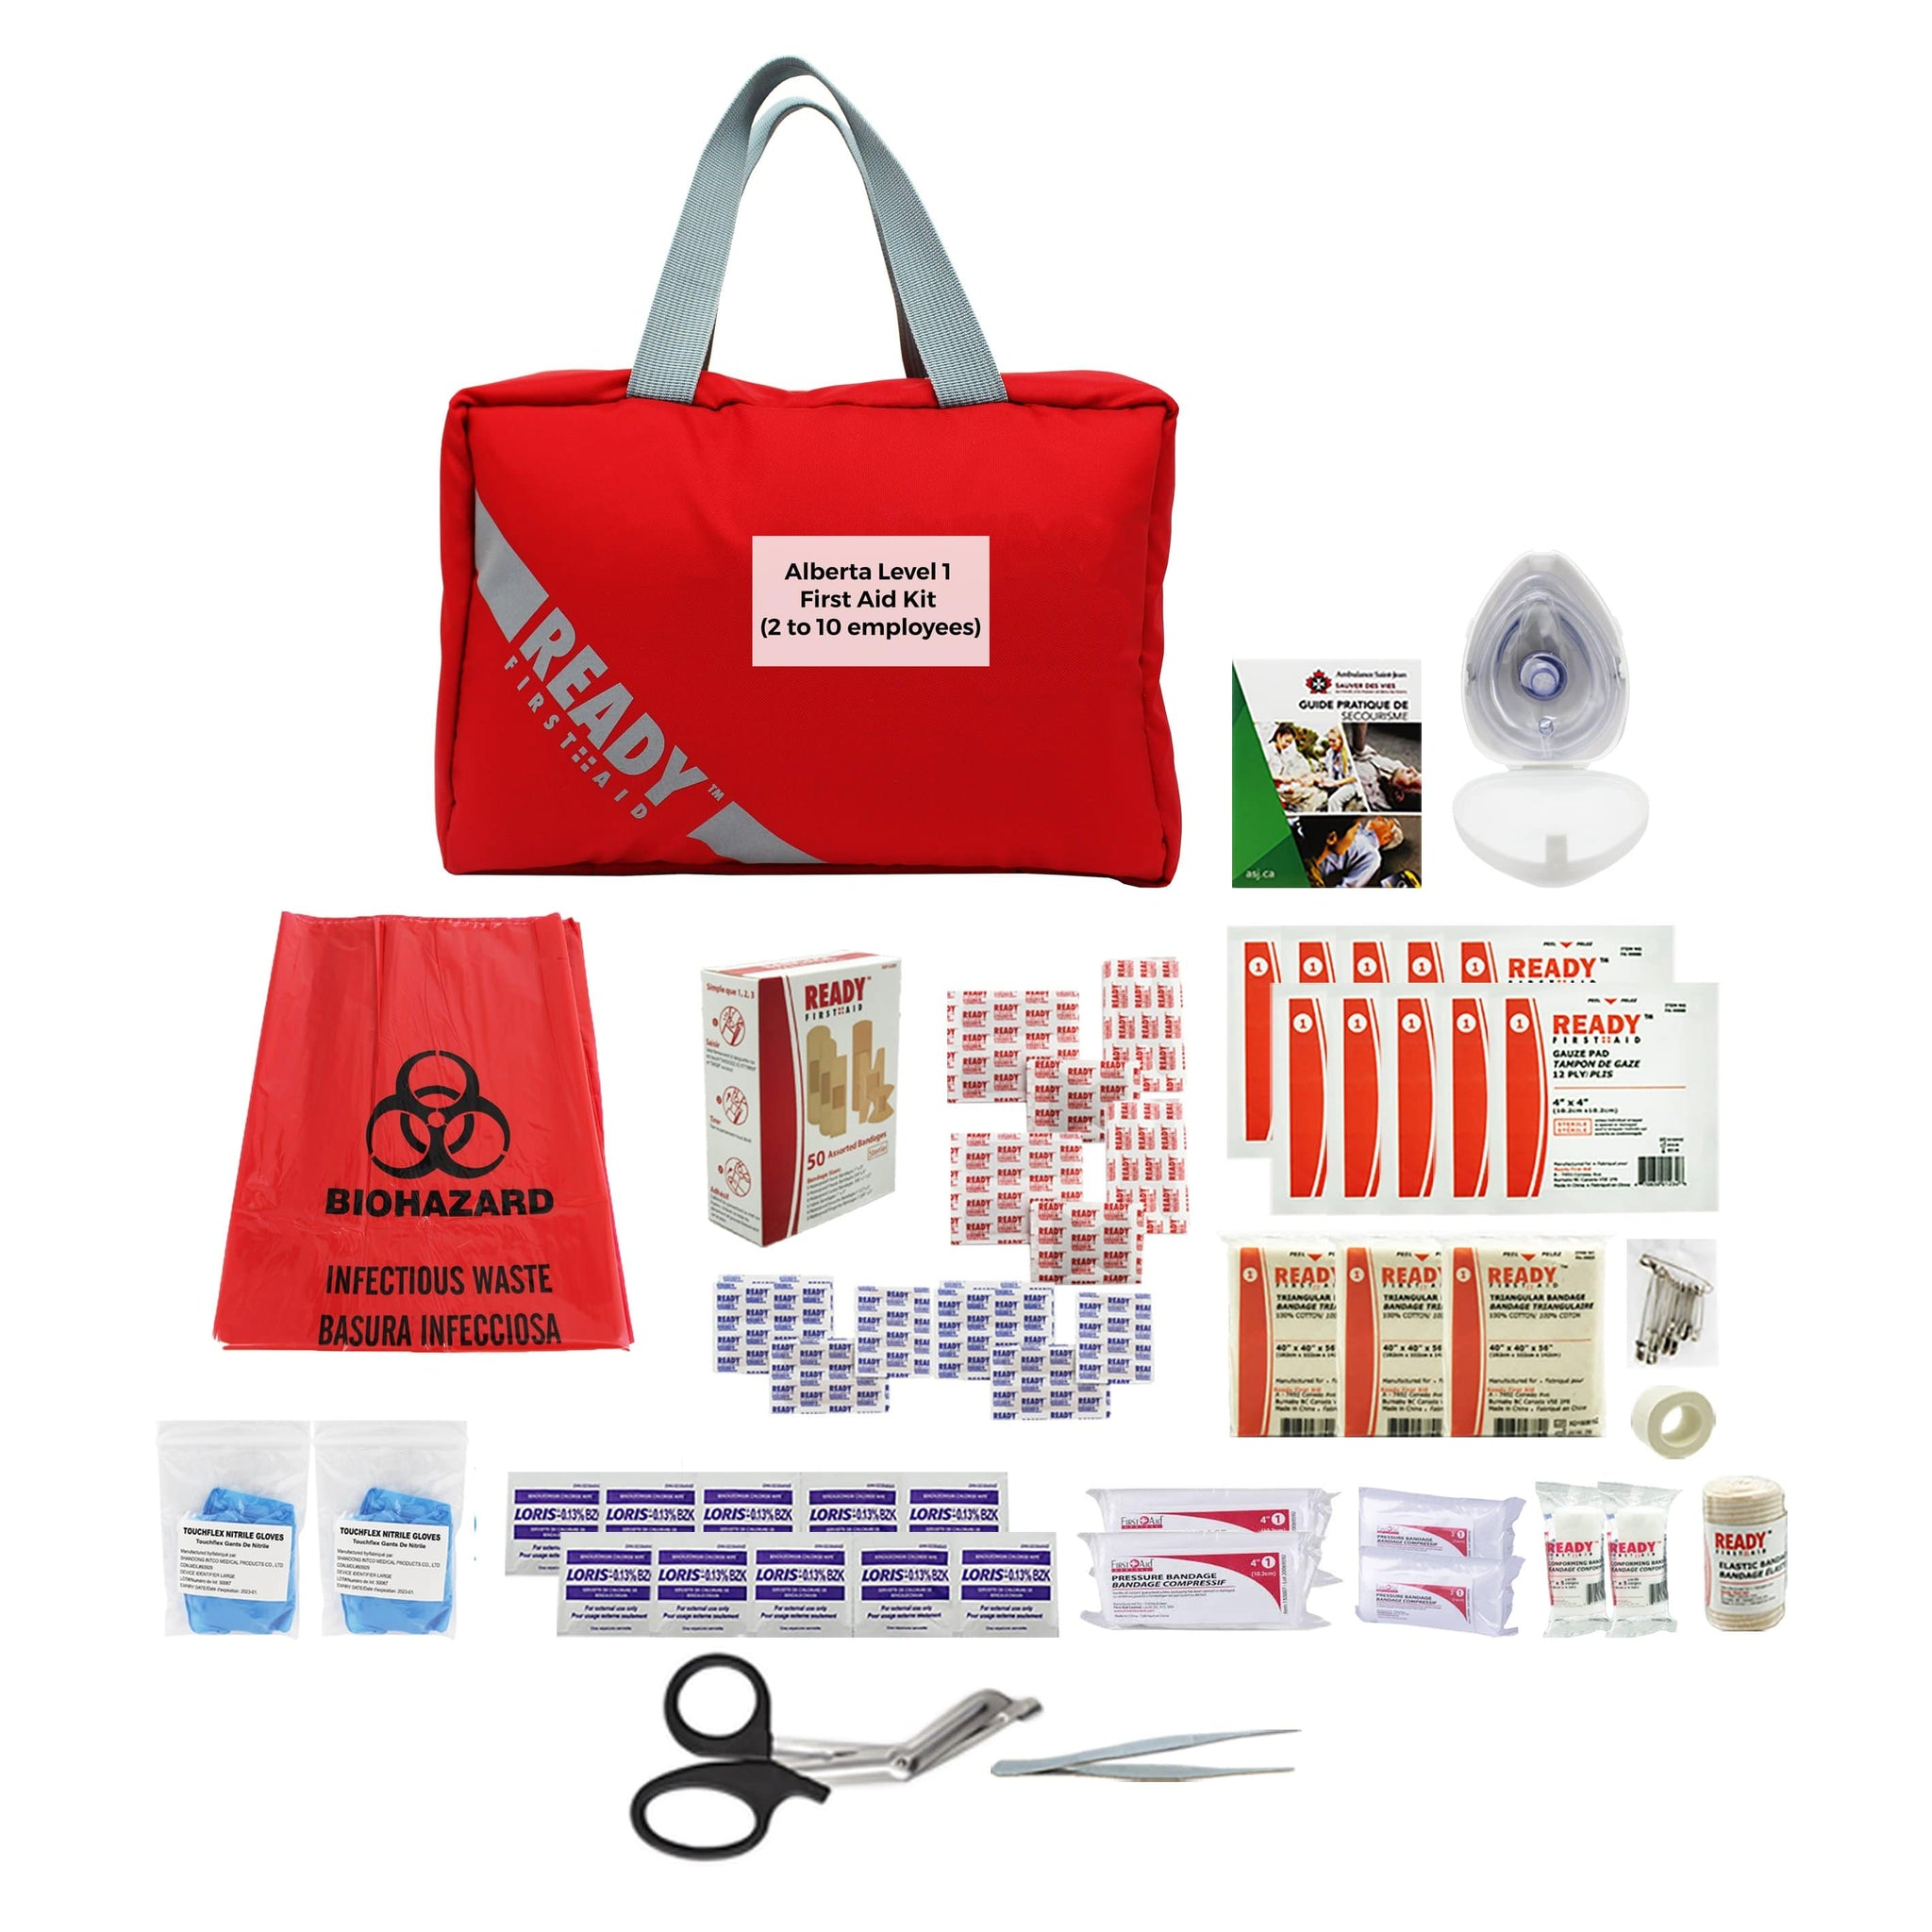 Alberta Level 1 First Aid Kit (2 to 10 employees) - Ready First Aid™